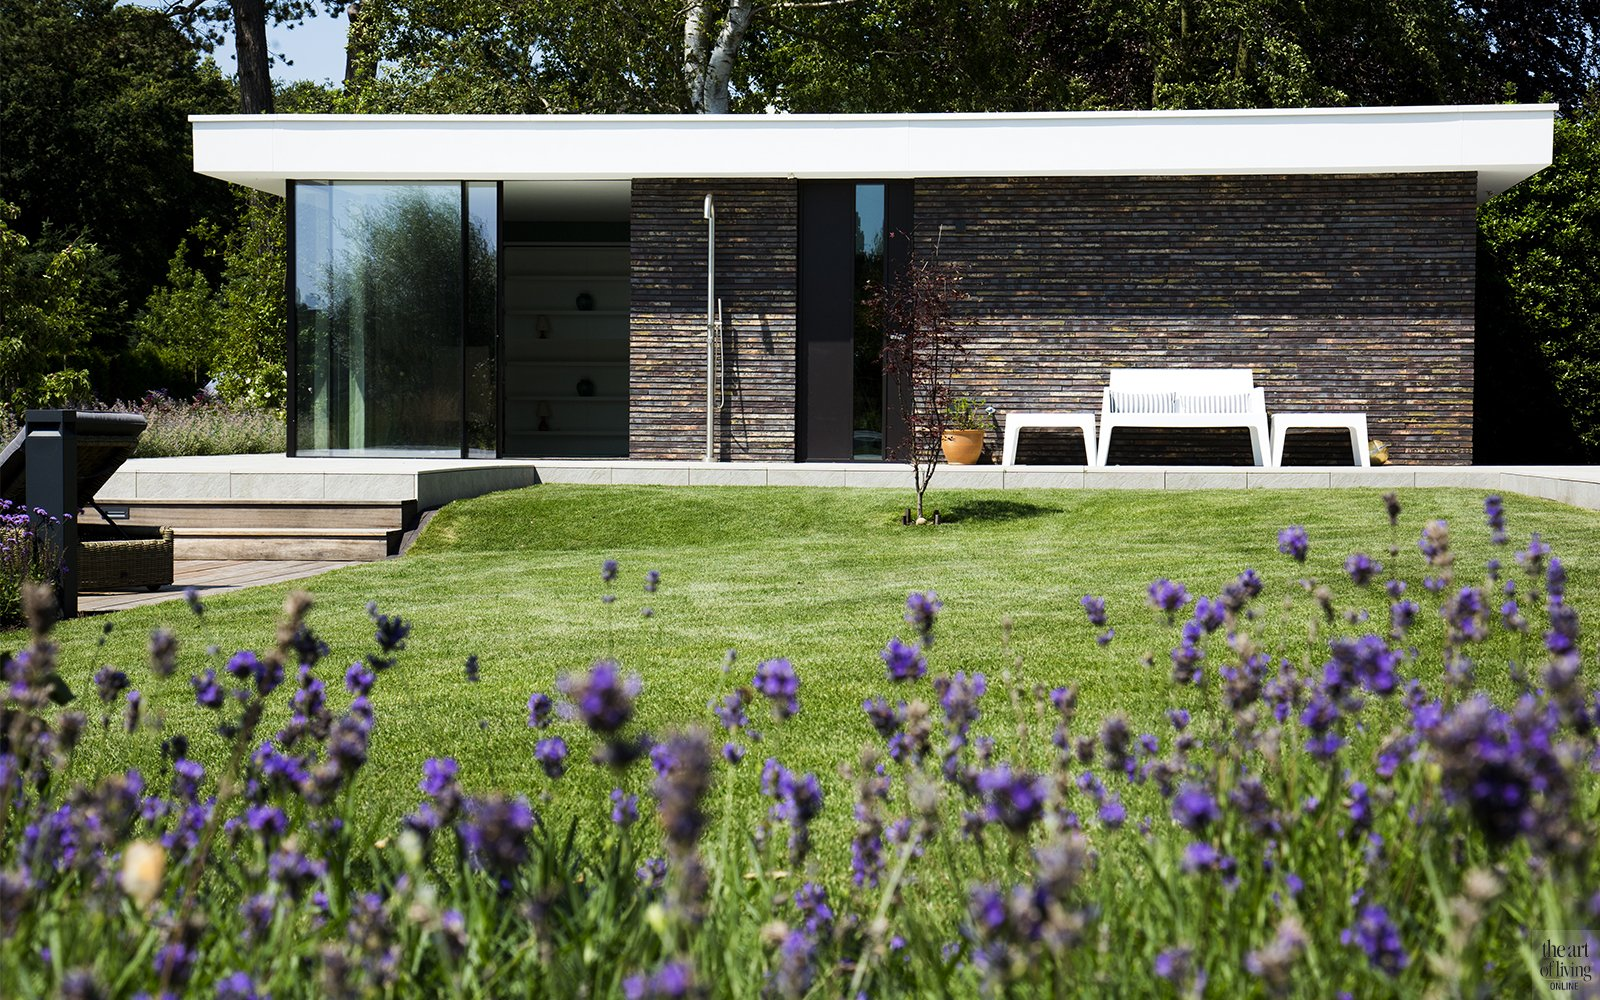 Van Egmond totaalarchitectuur, the art of living, luxe villa met thuis wellness